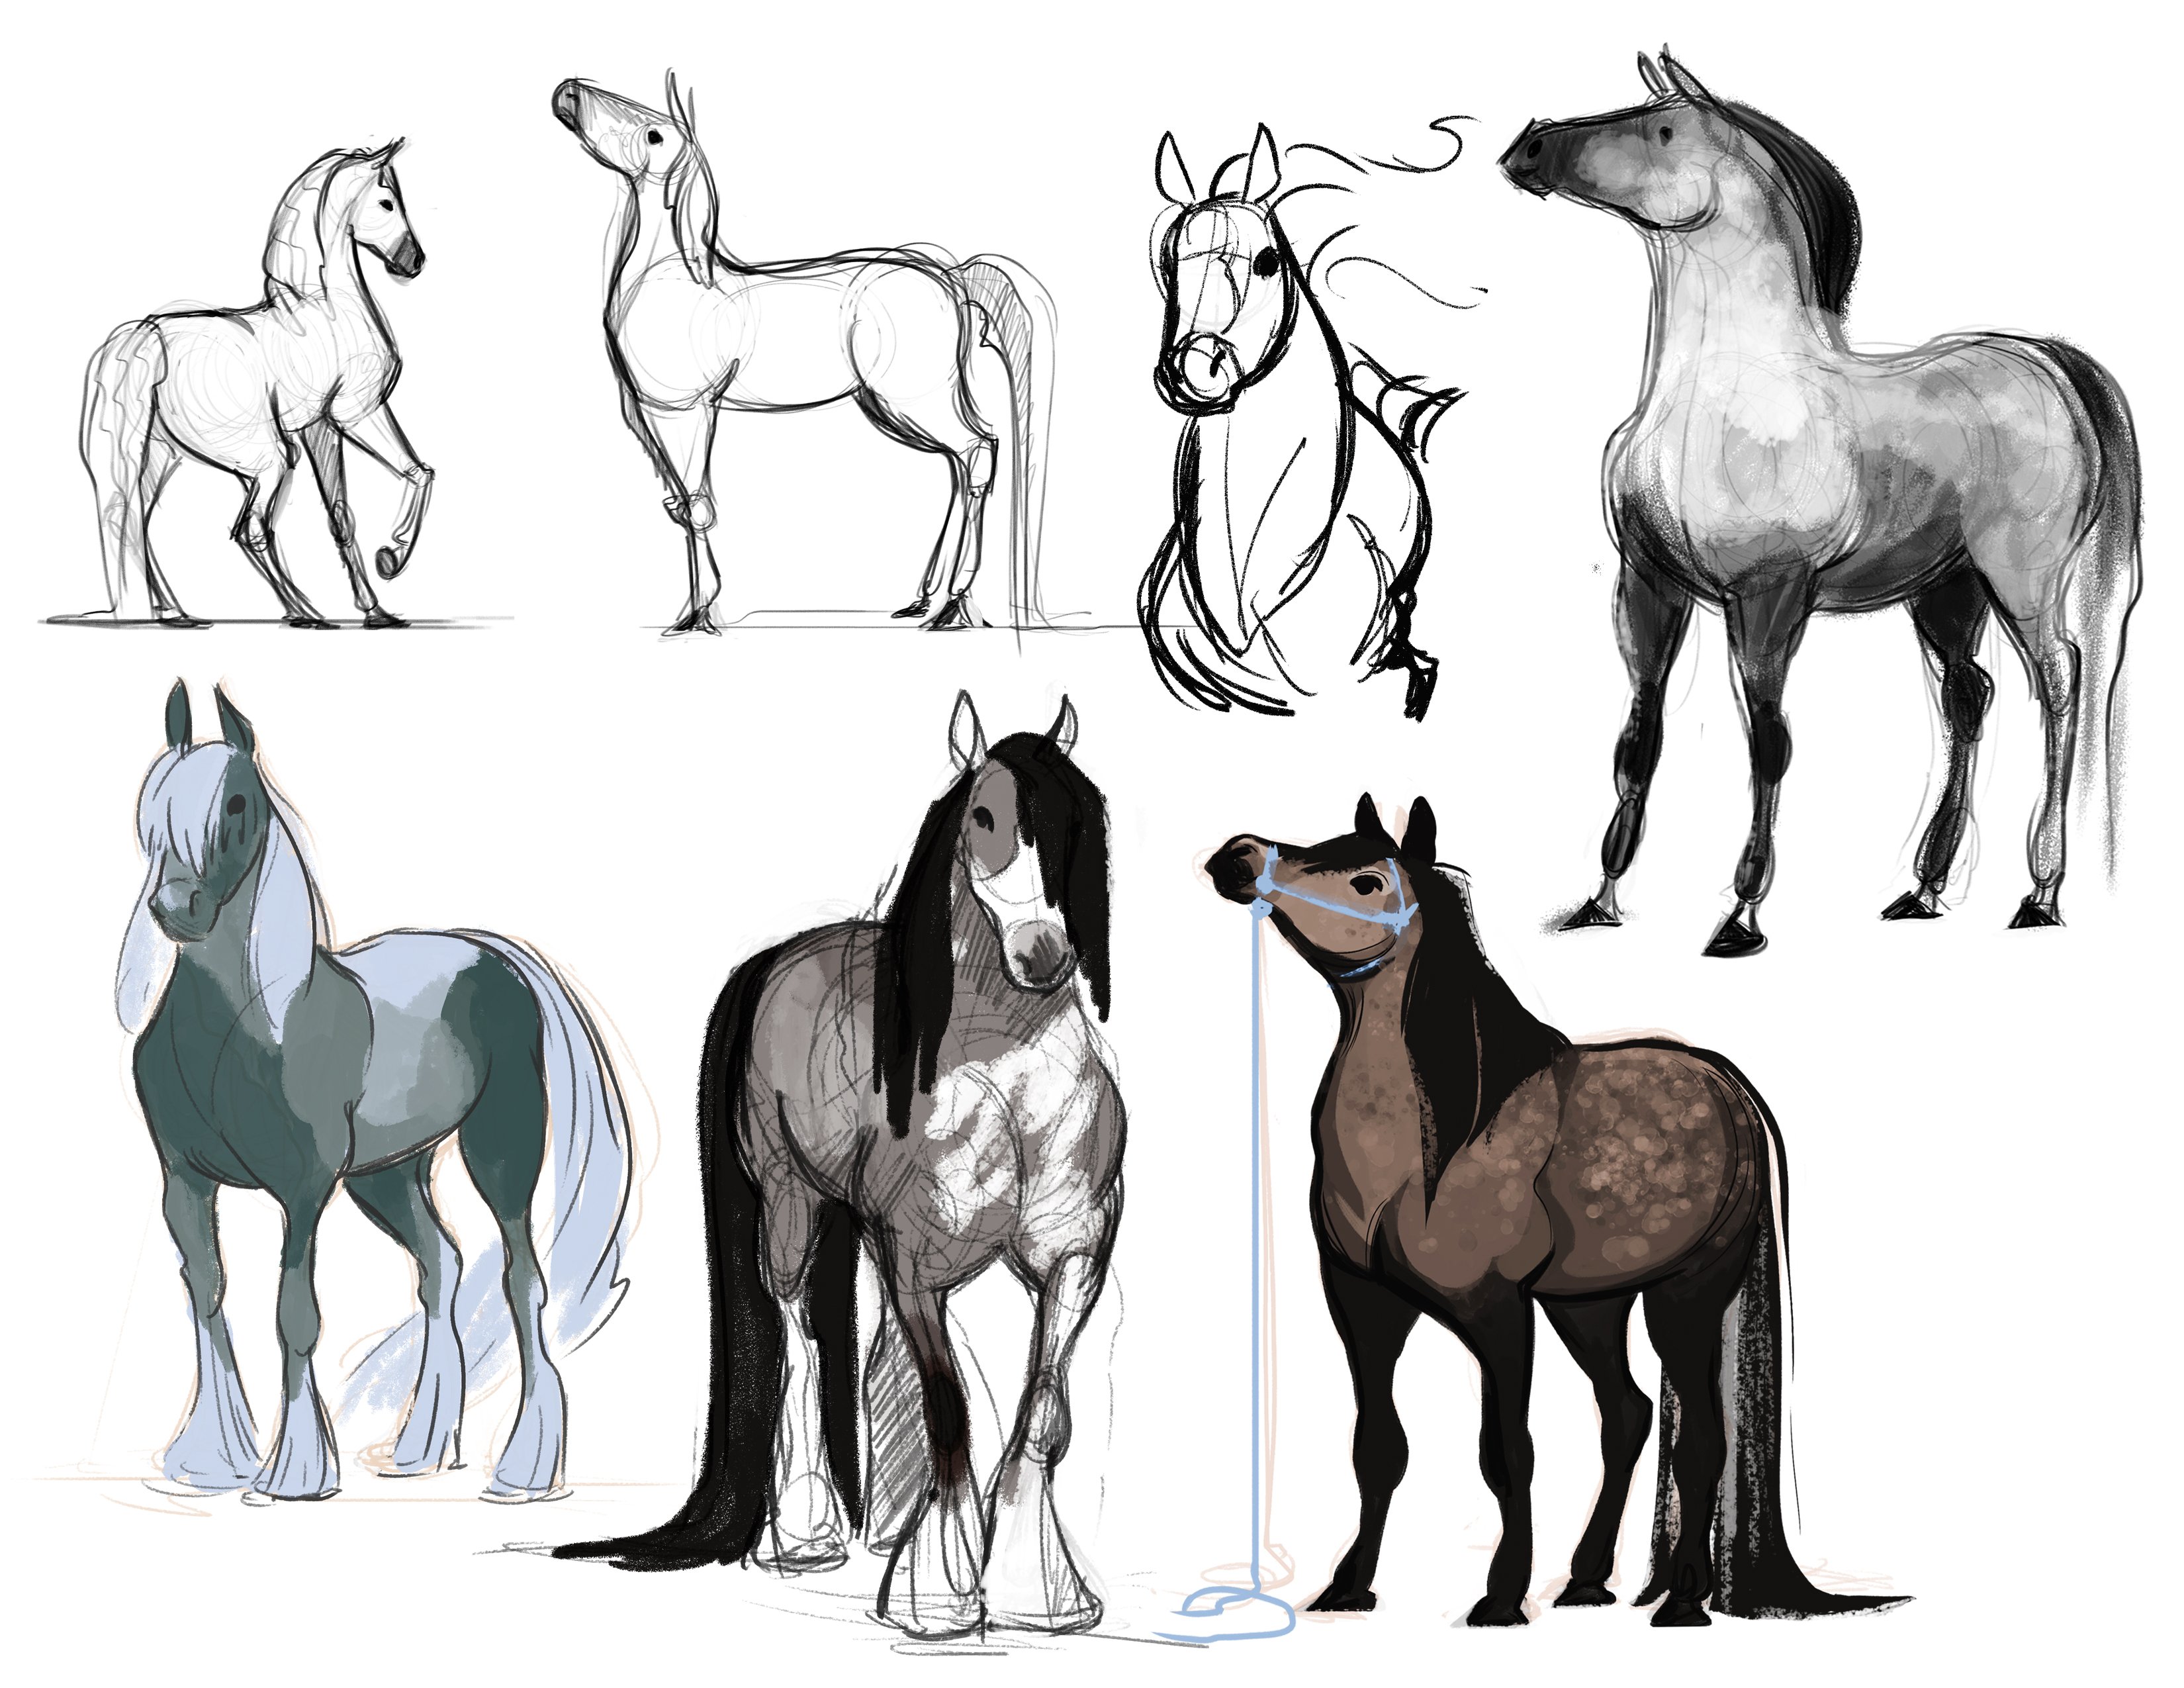 Horton_horse sketches 3